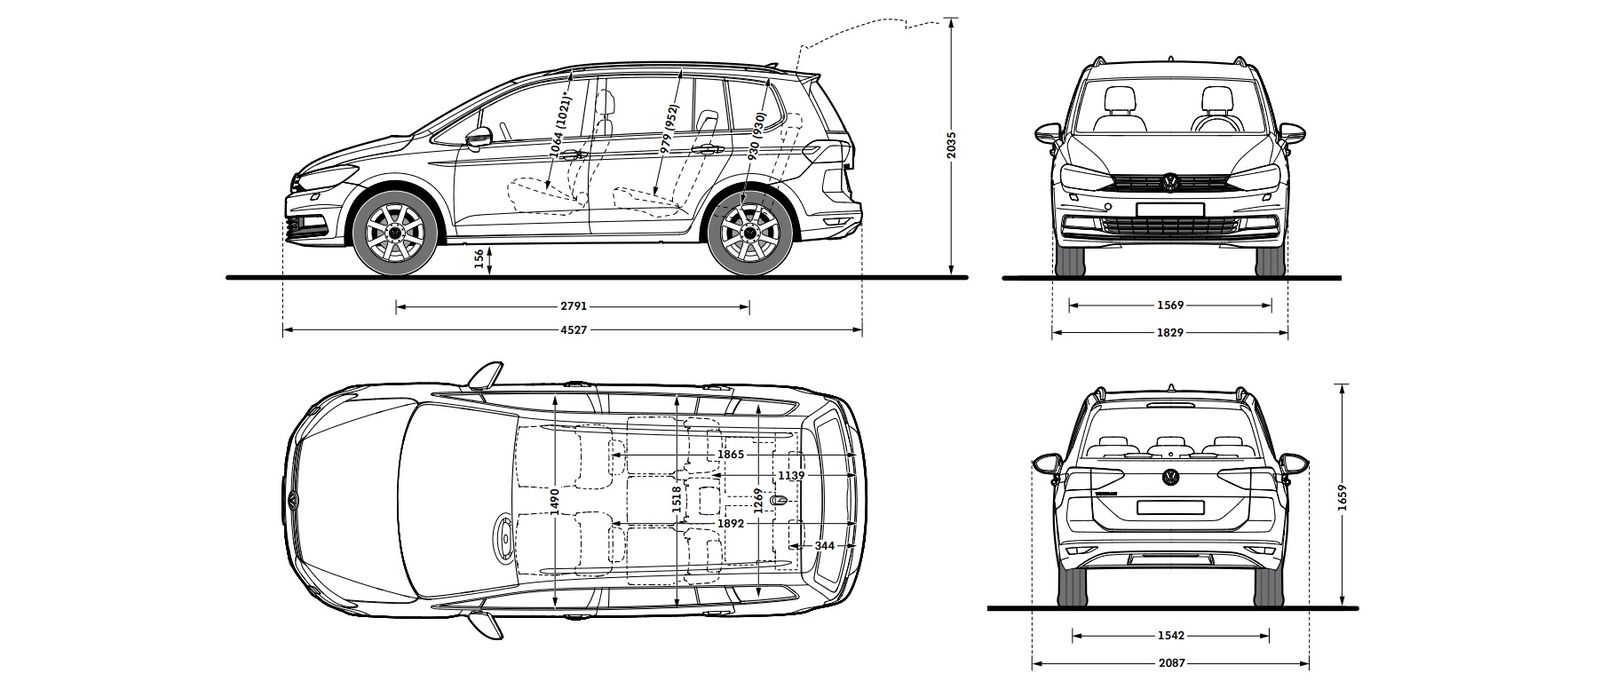 Nissan Qashqai Luggage Space.2013 Nissan LEAF Trunk Inside